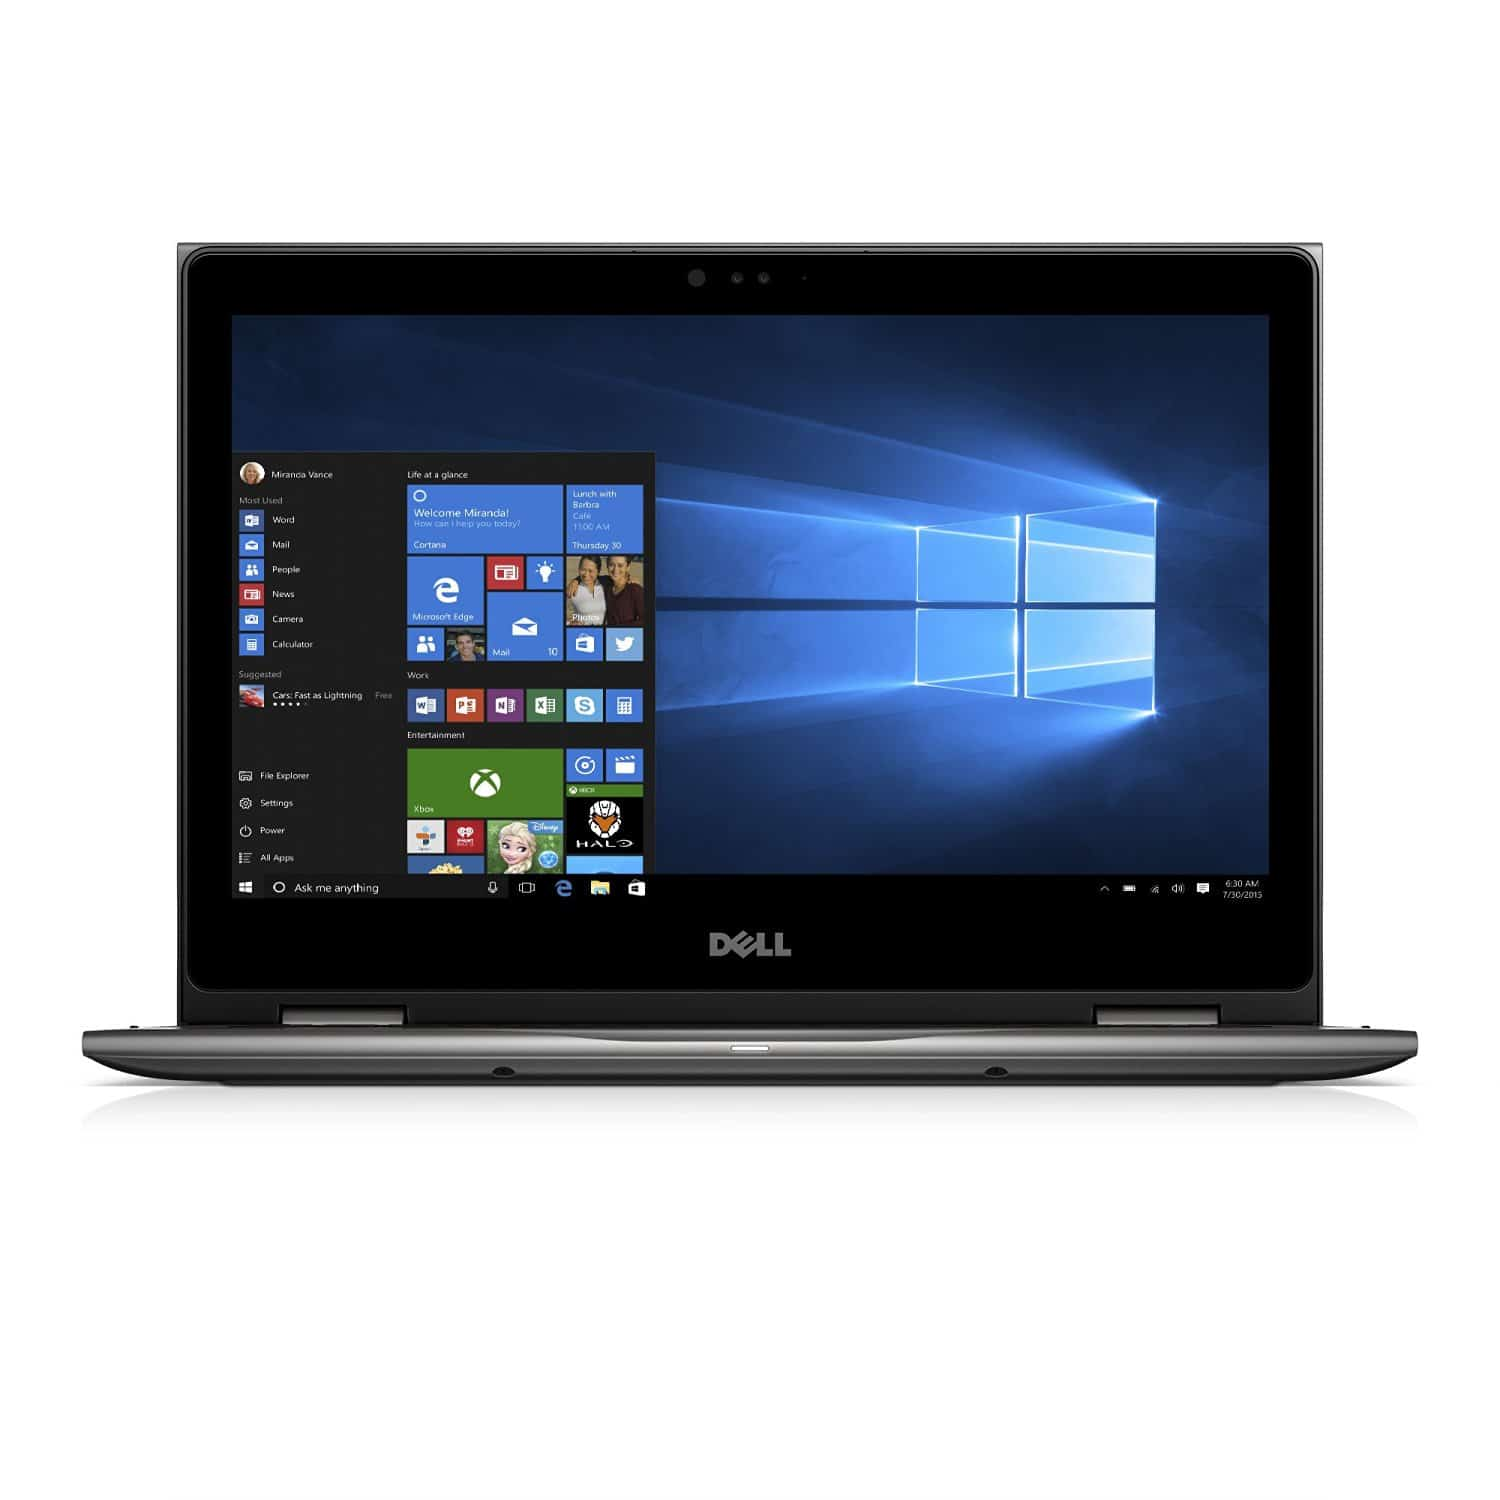 Dell Inspiron 2-in-1 laptop